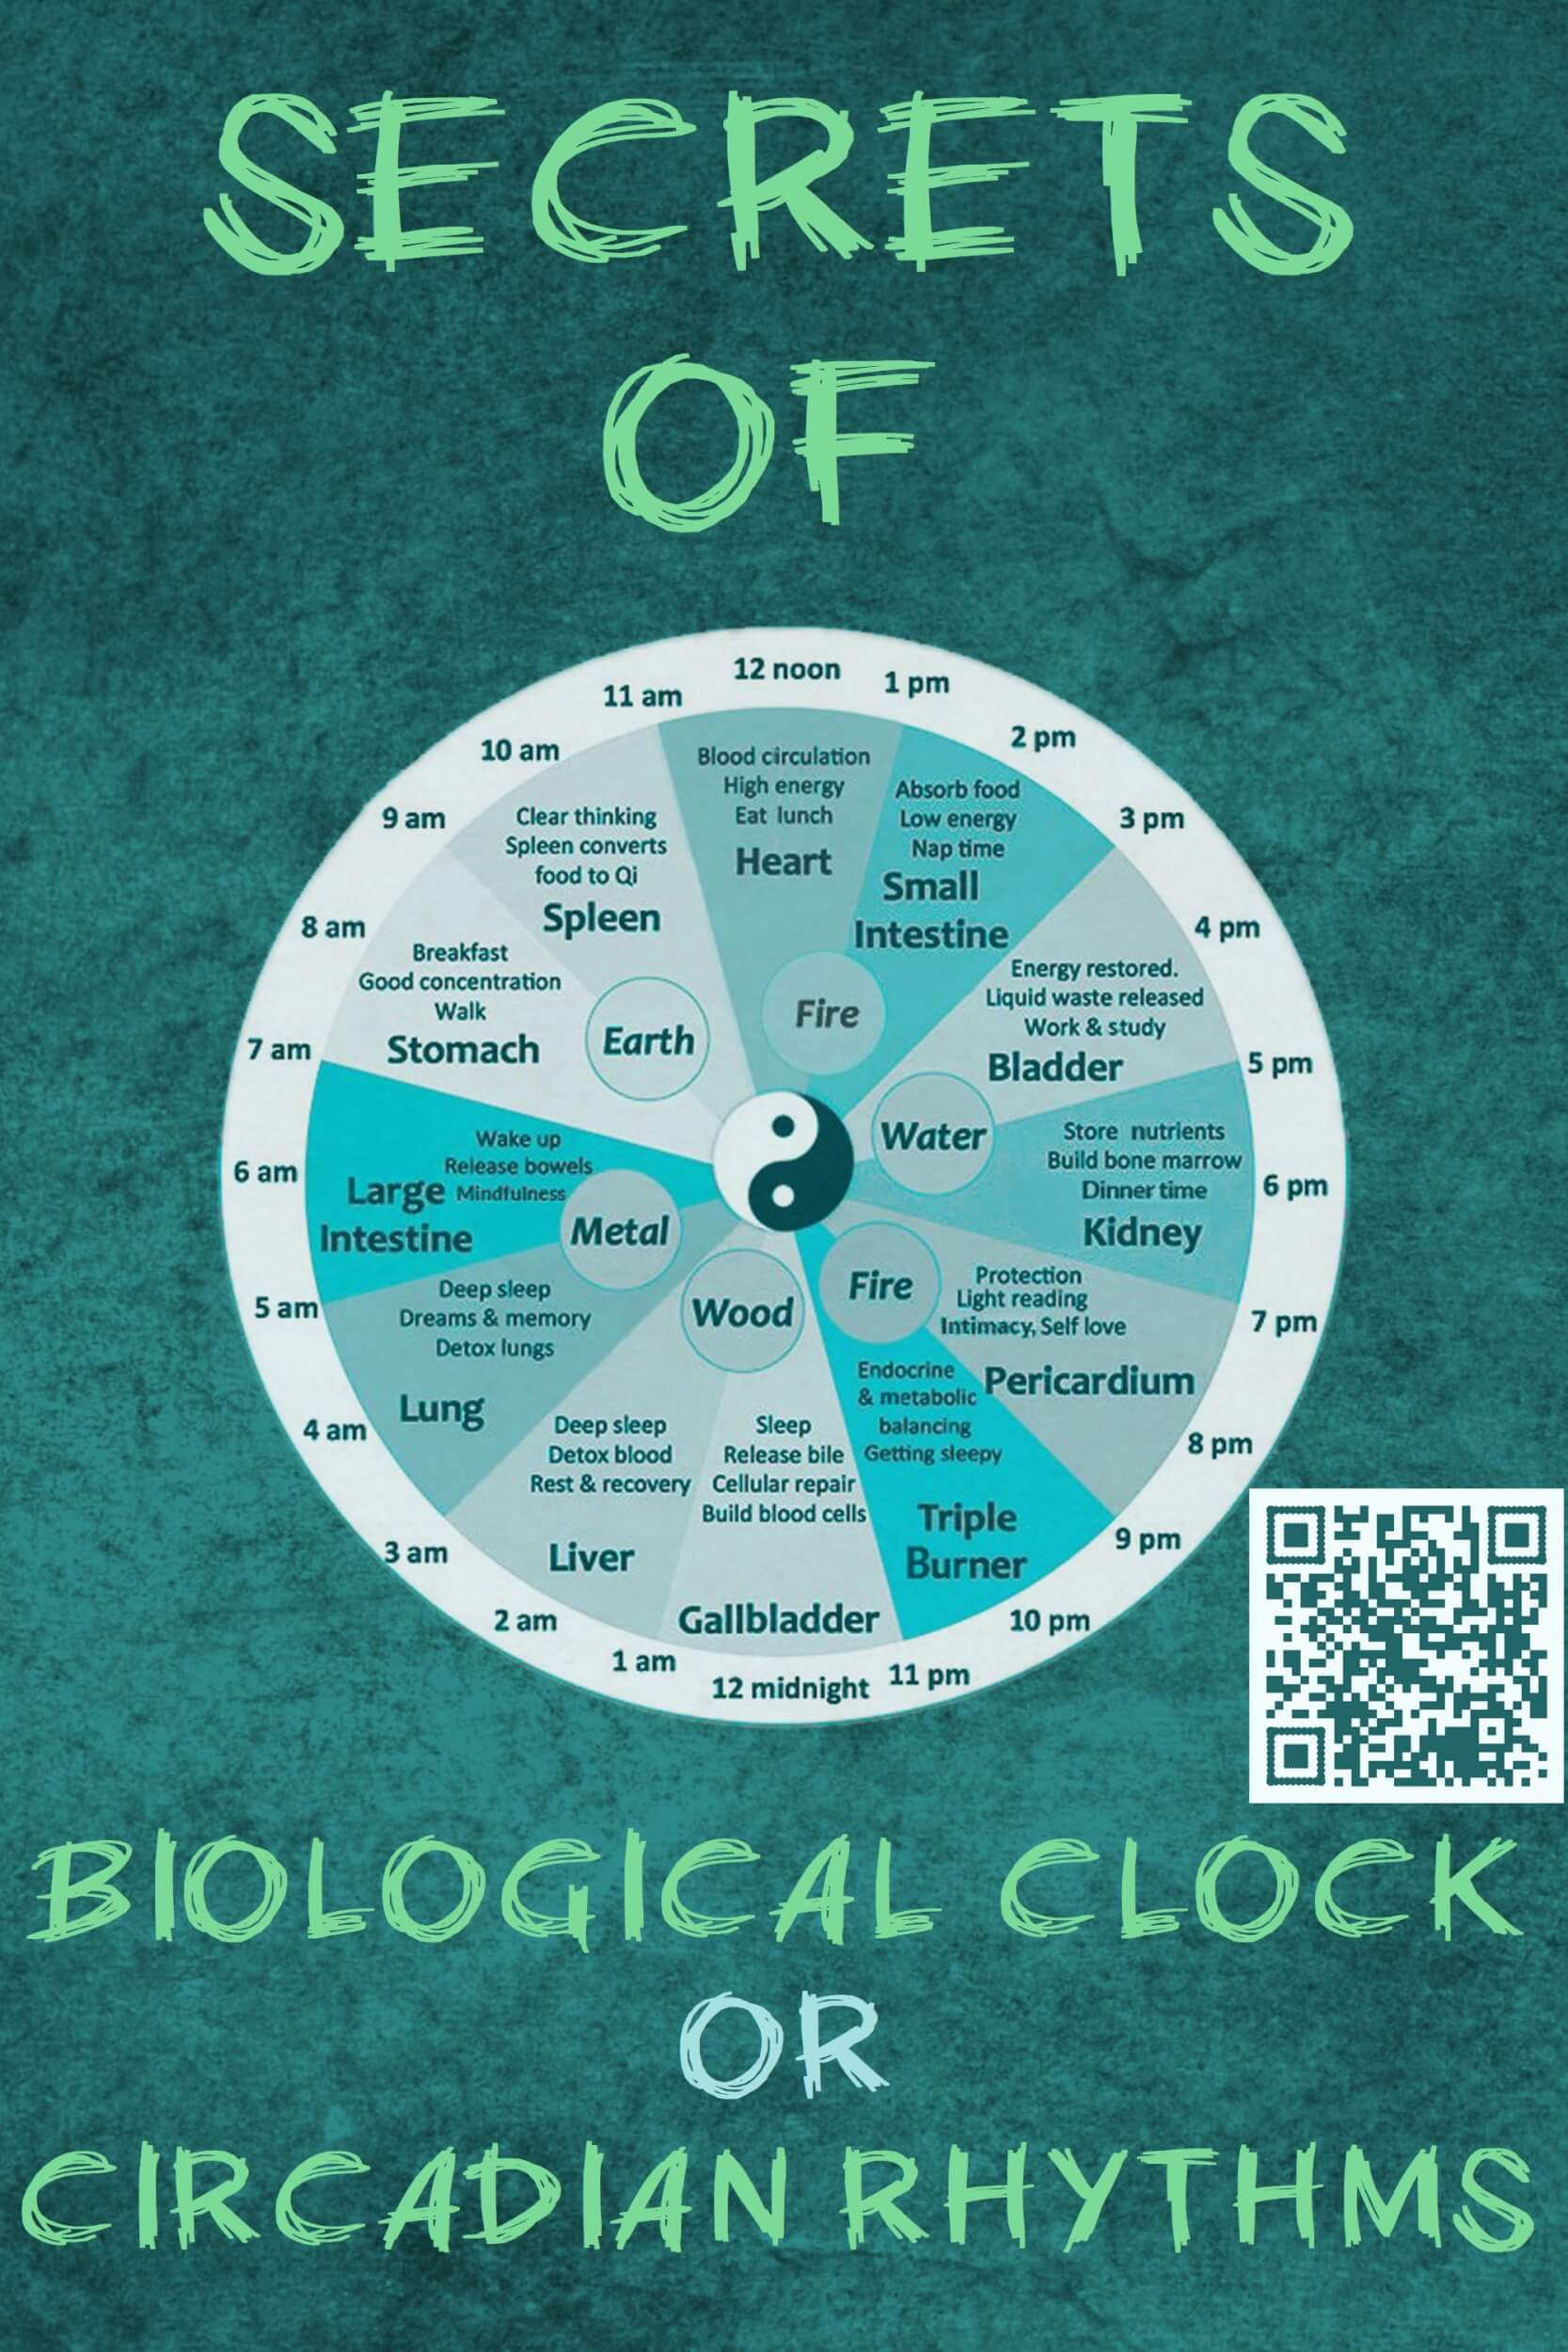 biological clock or circadian rhythms